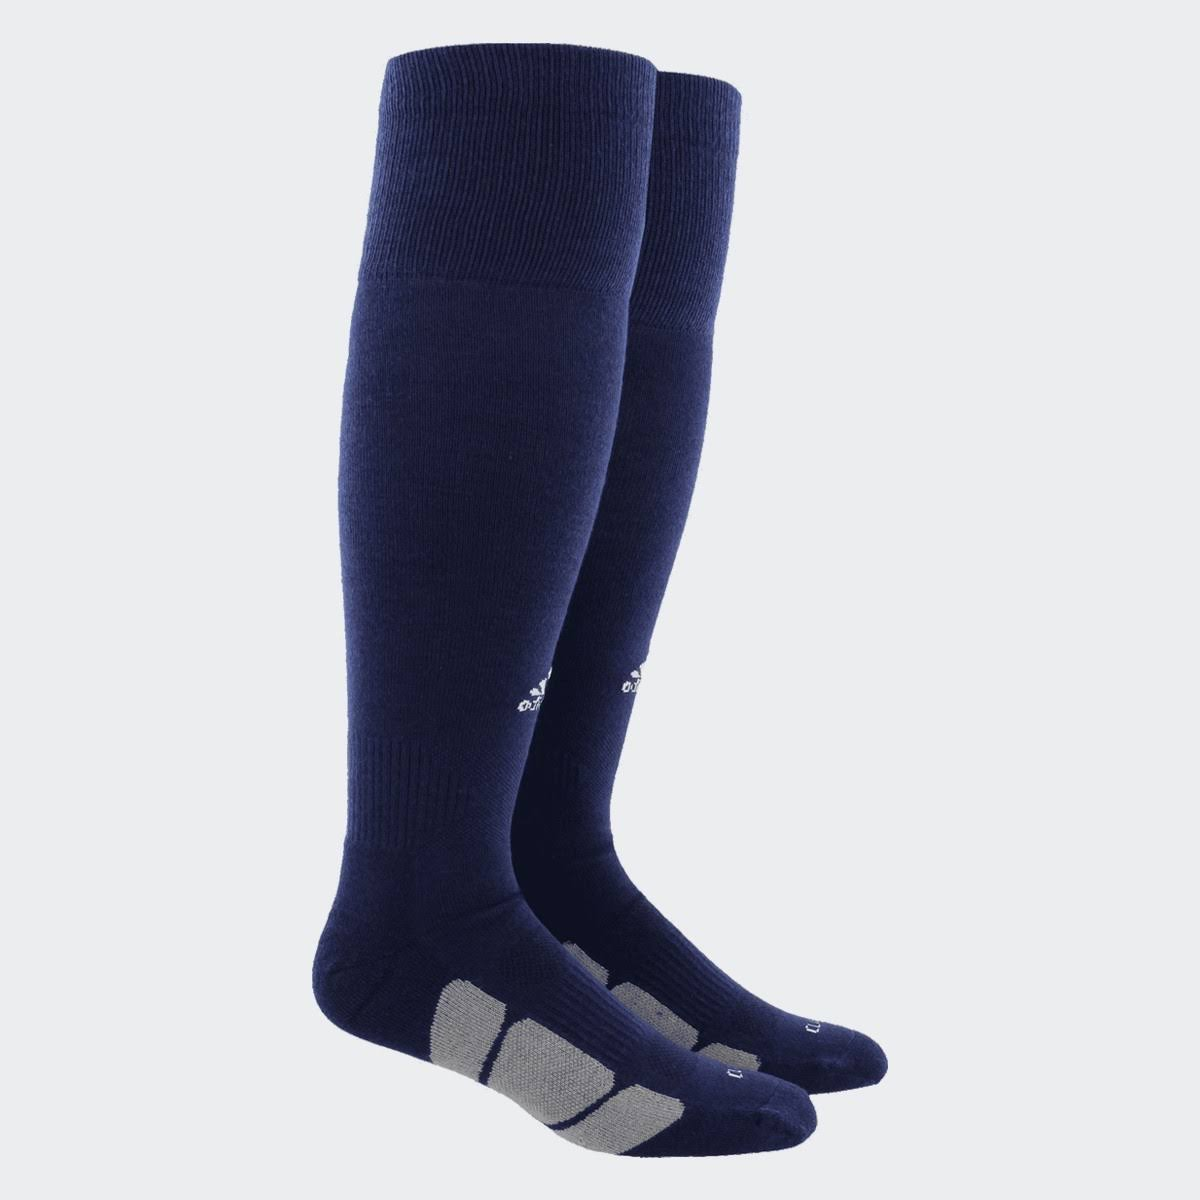 Adidas Utility Long Soccer Socks - Navy, Medium